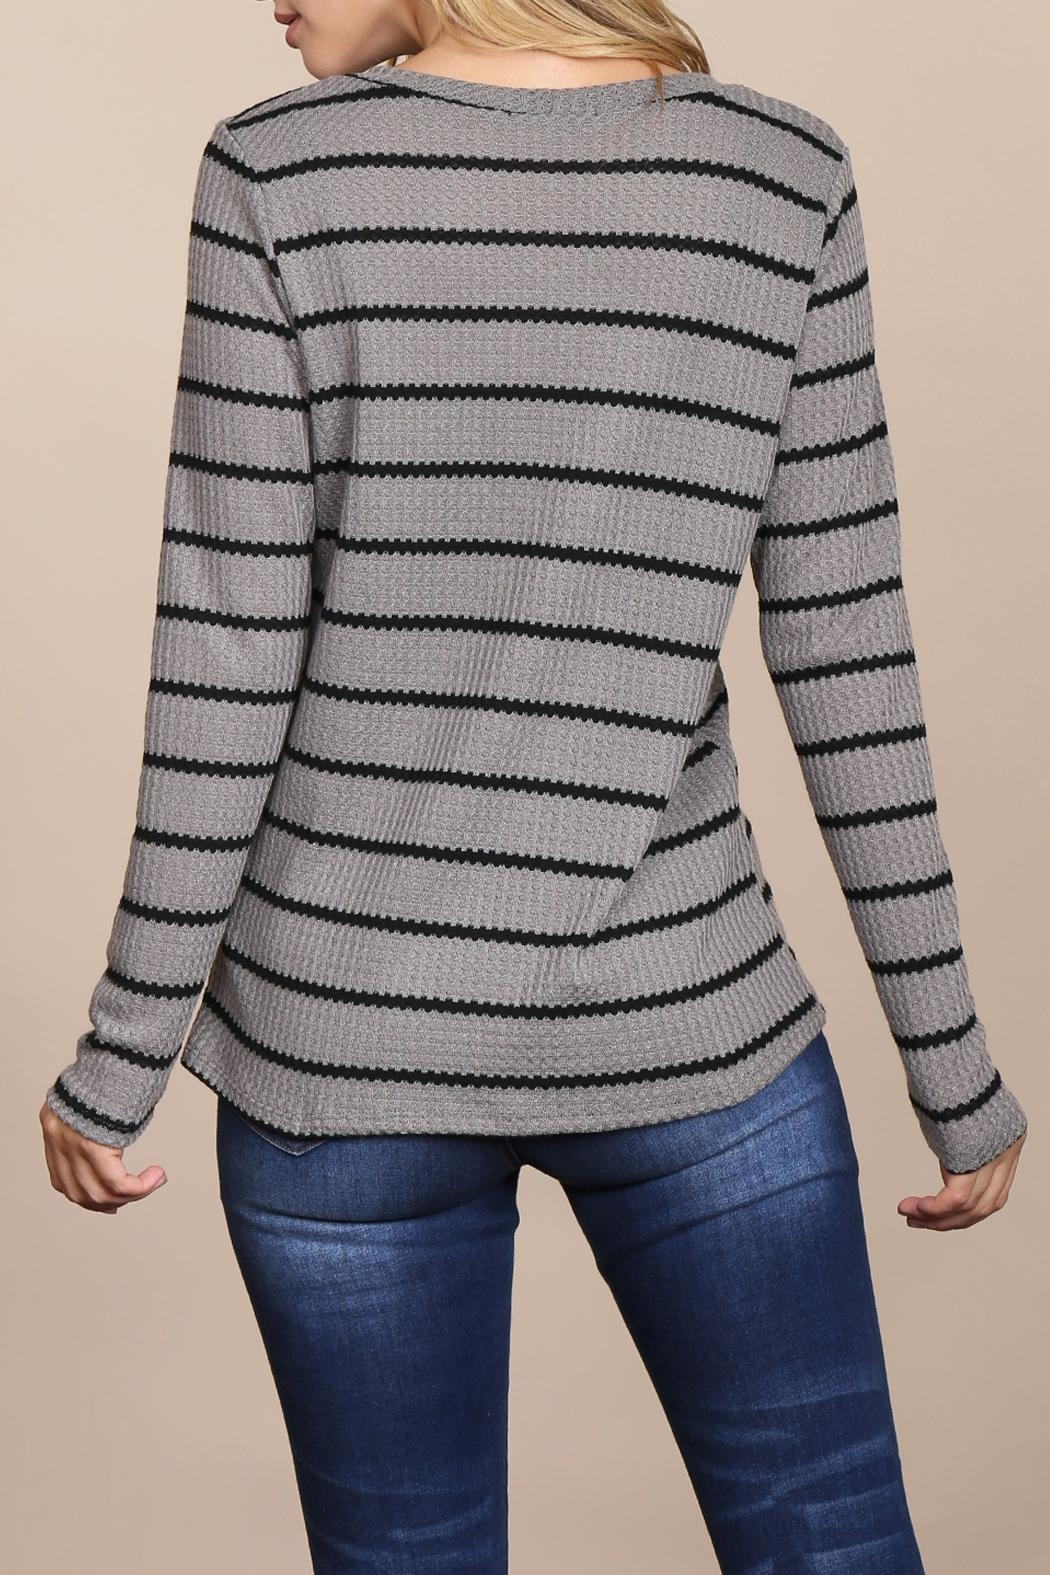 Riah Fashion Long-Sleeved-Round-Neck-Striped Waffle Top - Back Cropped Image